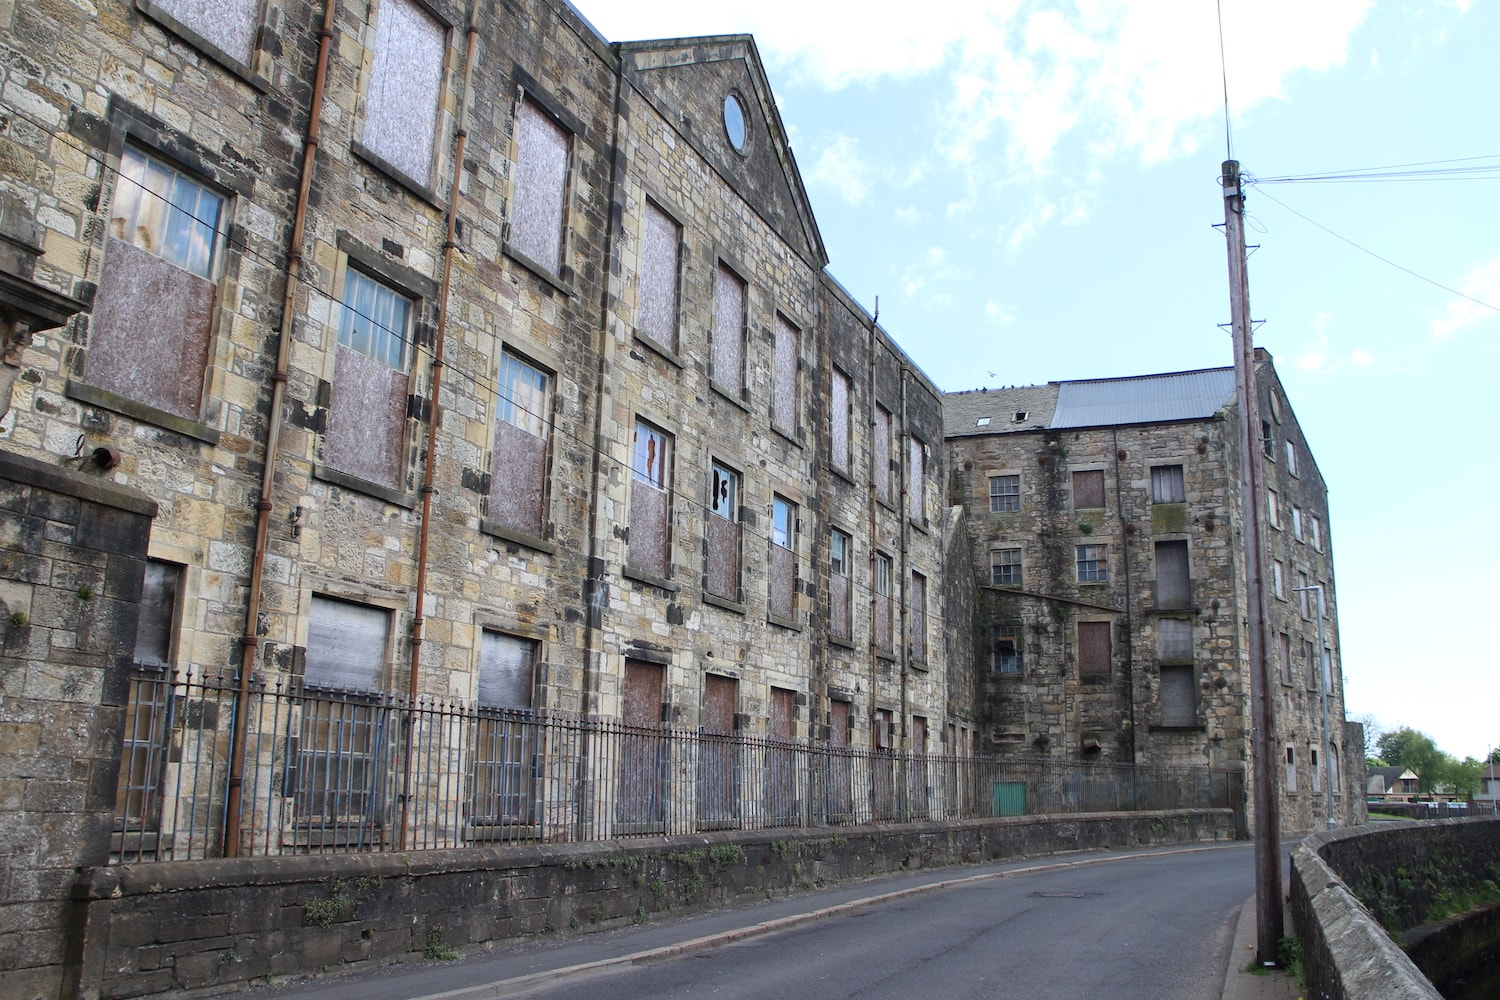 Stoneyholm Mill has been used as to produce cotton, spin flax and manufacture nets and twine